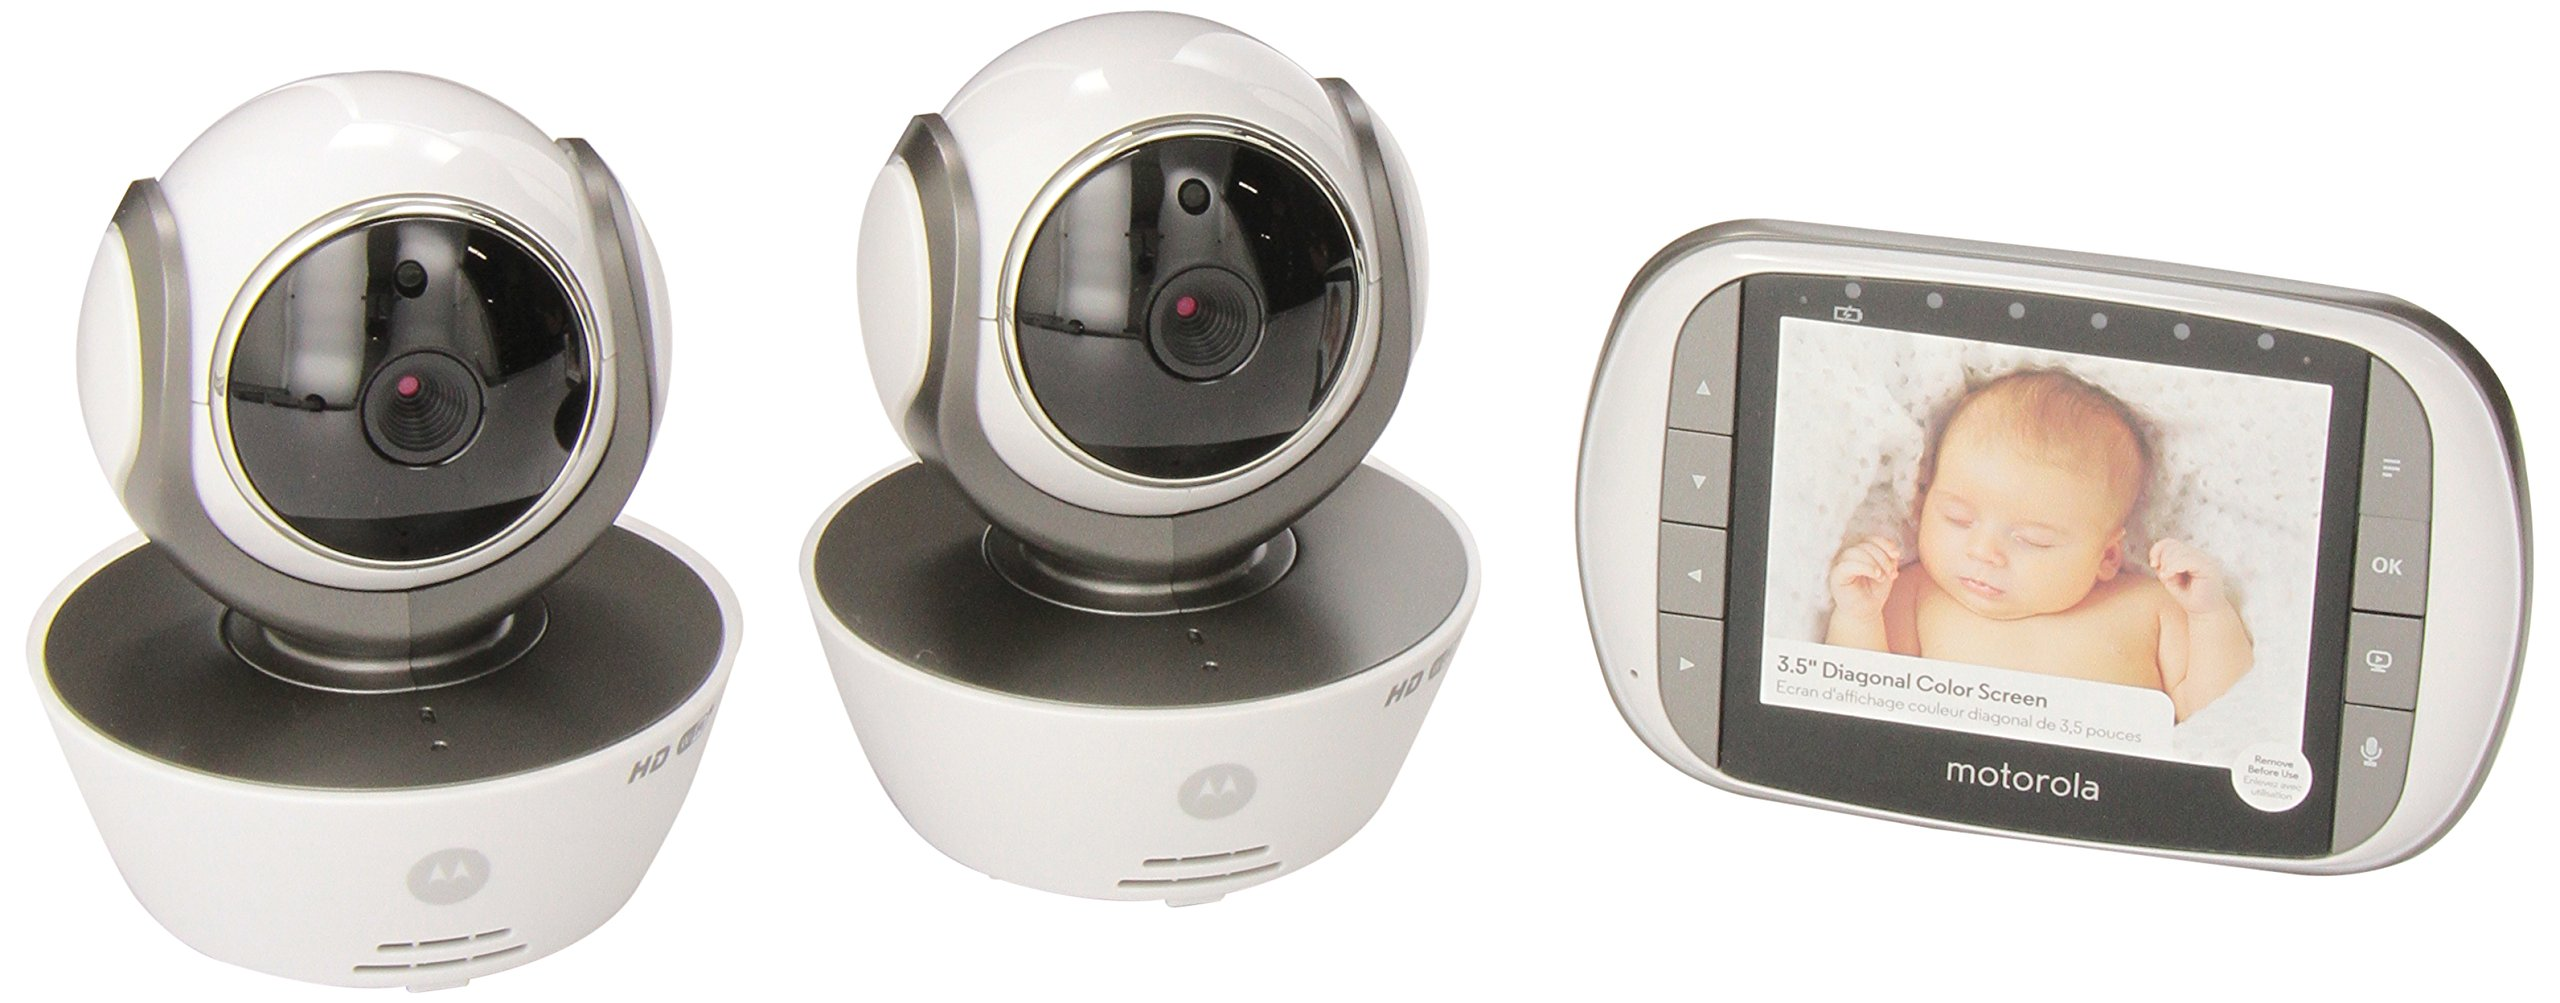 Motorola MBP853CONNECT-2 Dual Mode Baby Monitor with 2 Cameras and 3.5-Inch LCD Parent Monitor and Wi-Fi Internet Viewing by Motorola Baby (Image #1)